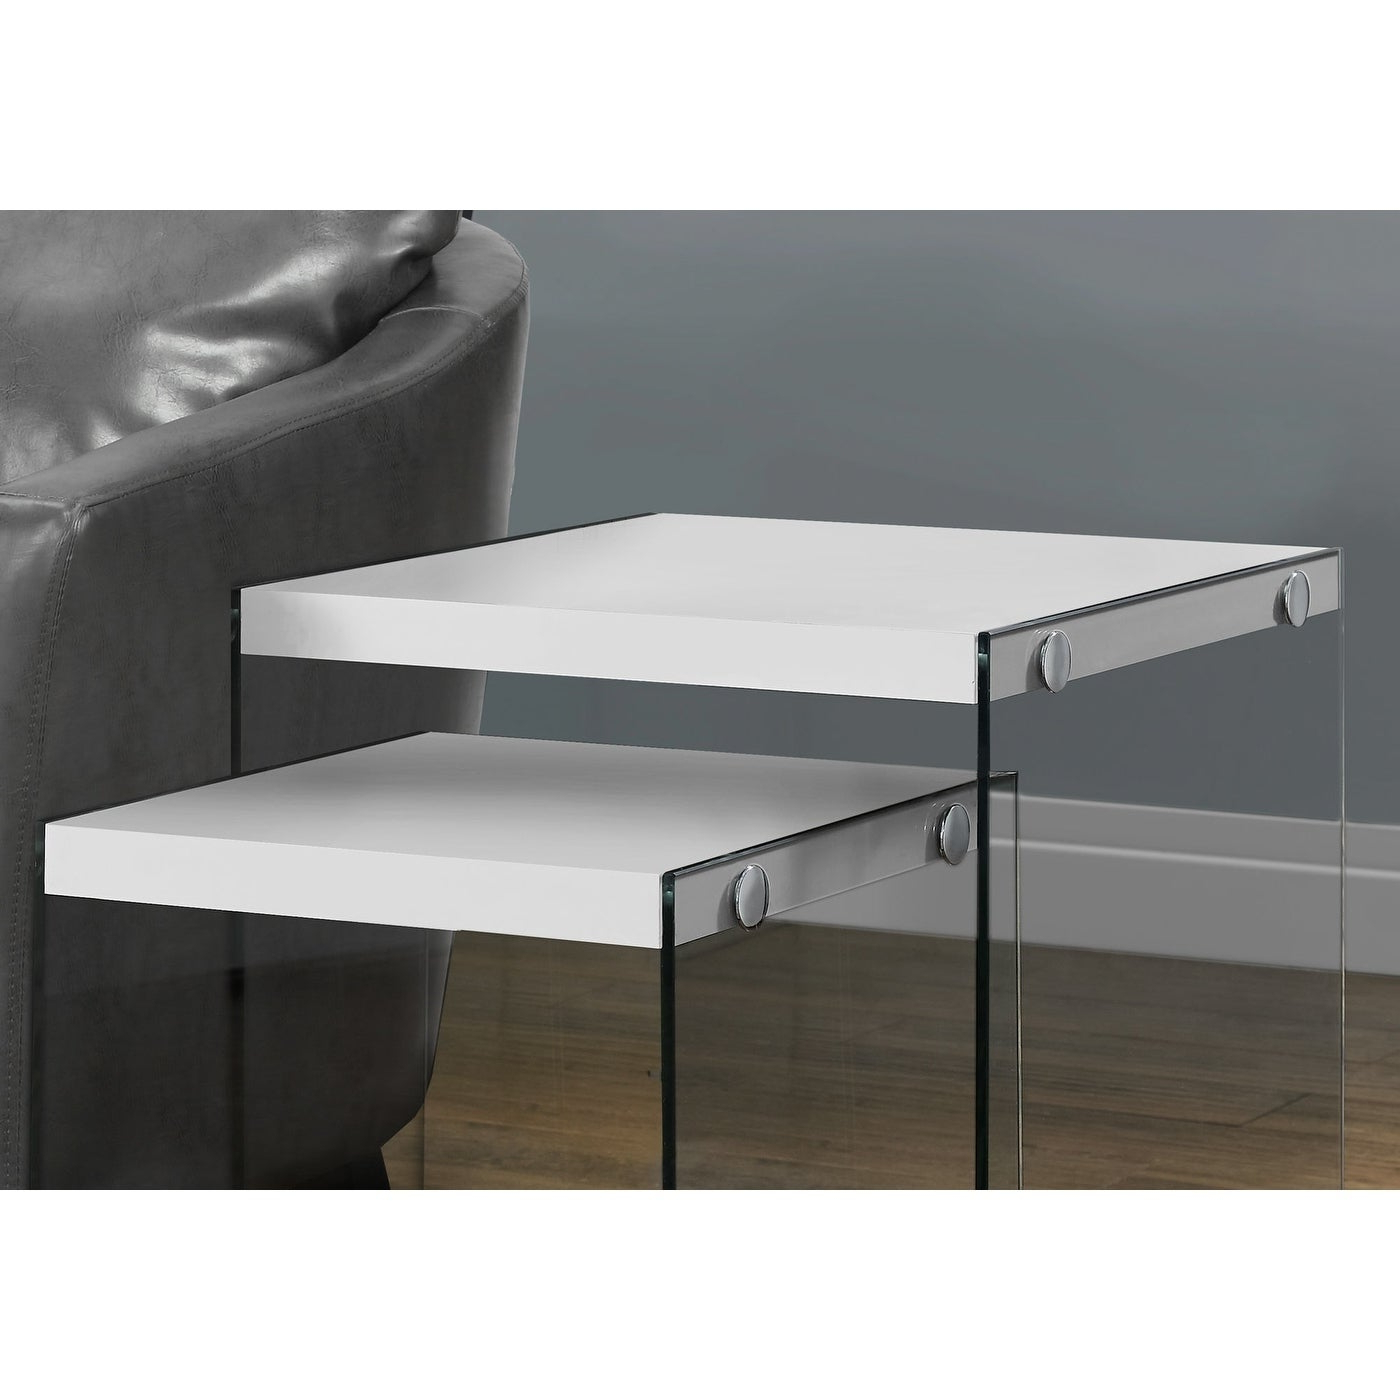 2020 Glossy White Hollow Core Tempered Glass Cocktail Tables In Glossy White Tempered Glass 2 Piece Nesting Table Set (View 11 of 20)